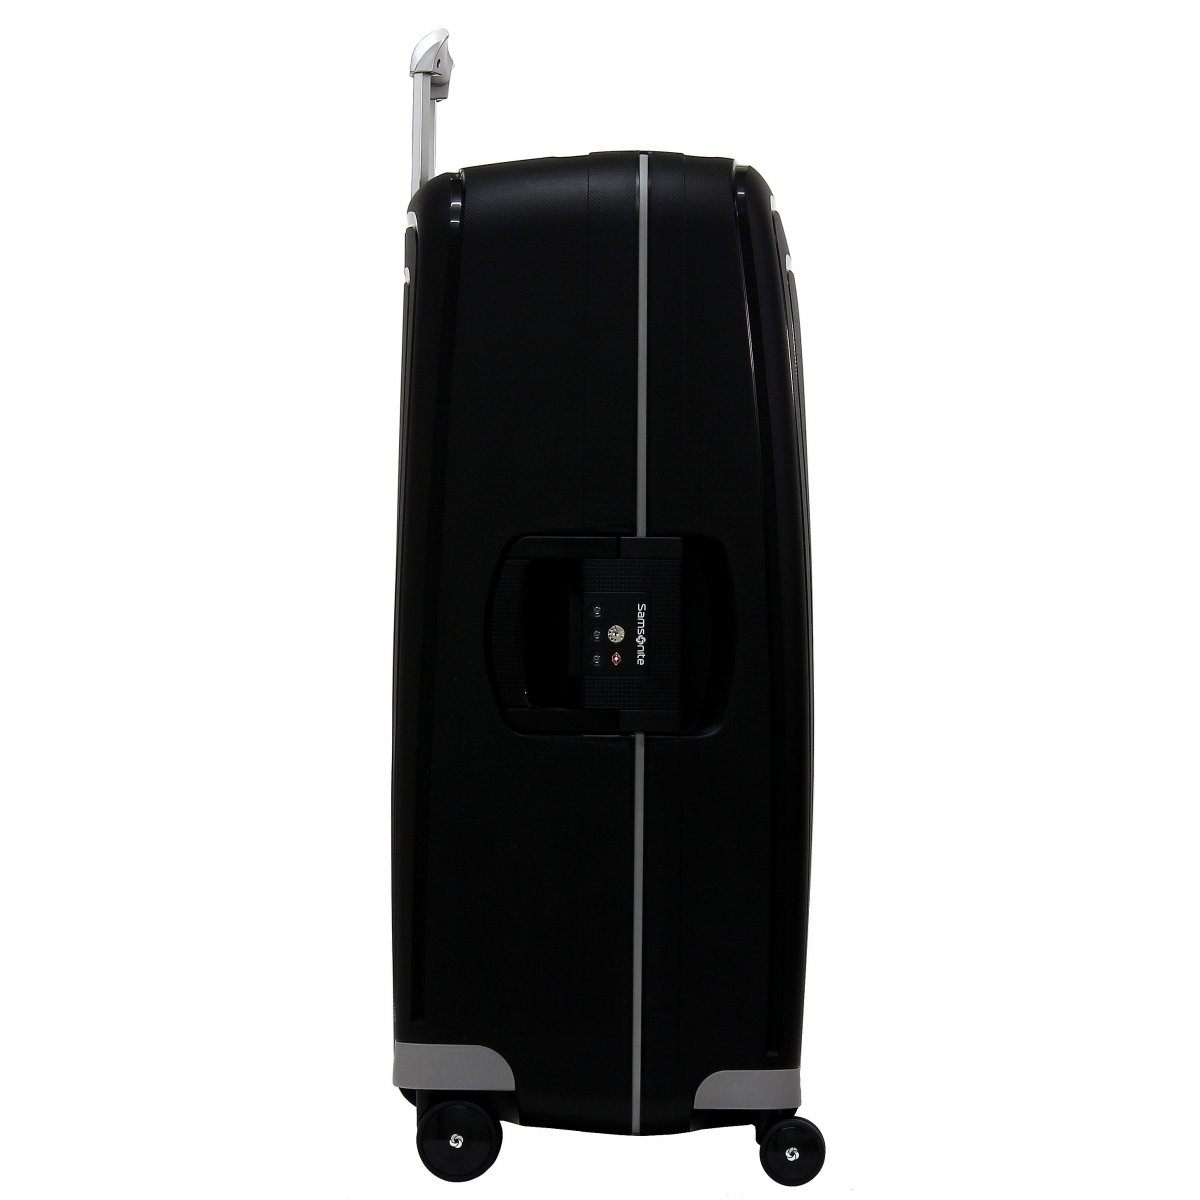 valise samsonite s 39 cure spinner 75cm scure08 couleur principale noir promotion. Black Bedroom Furniture Sets. Home Design Ideas